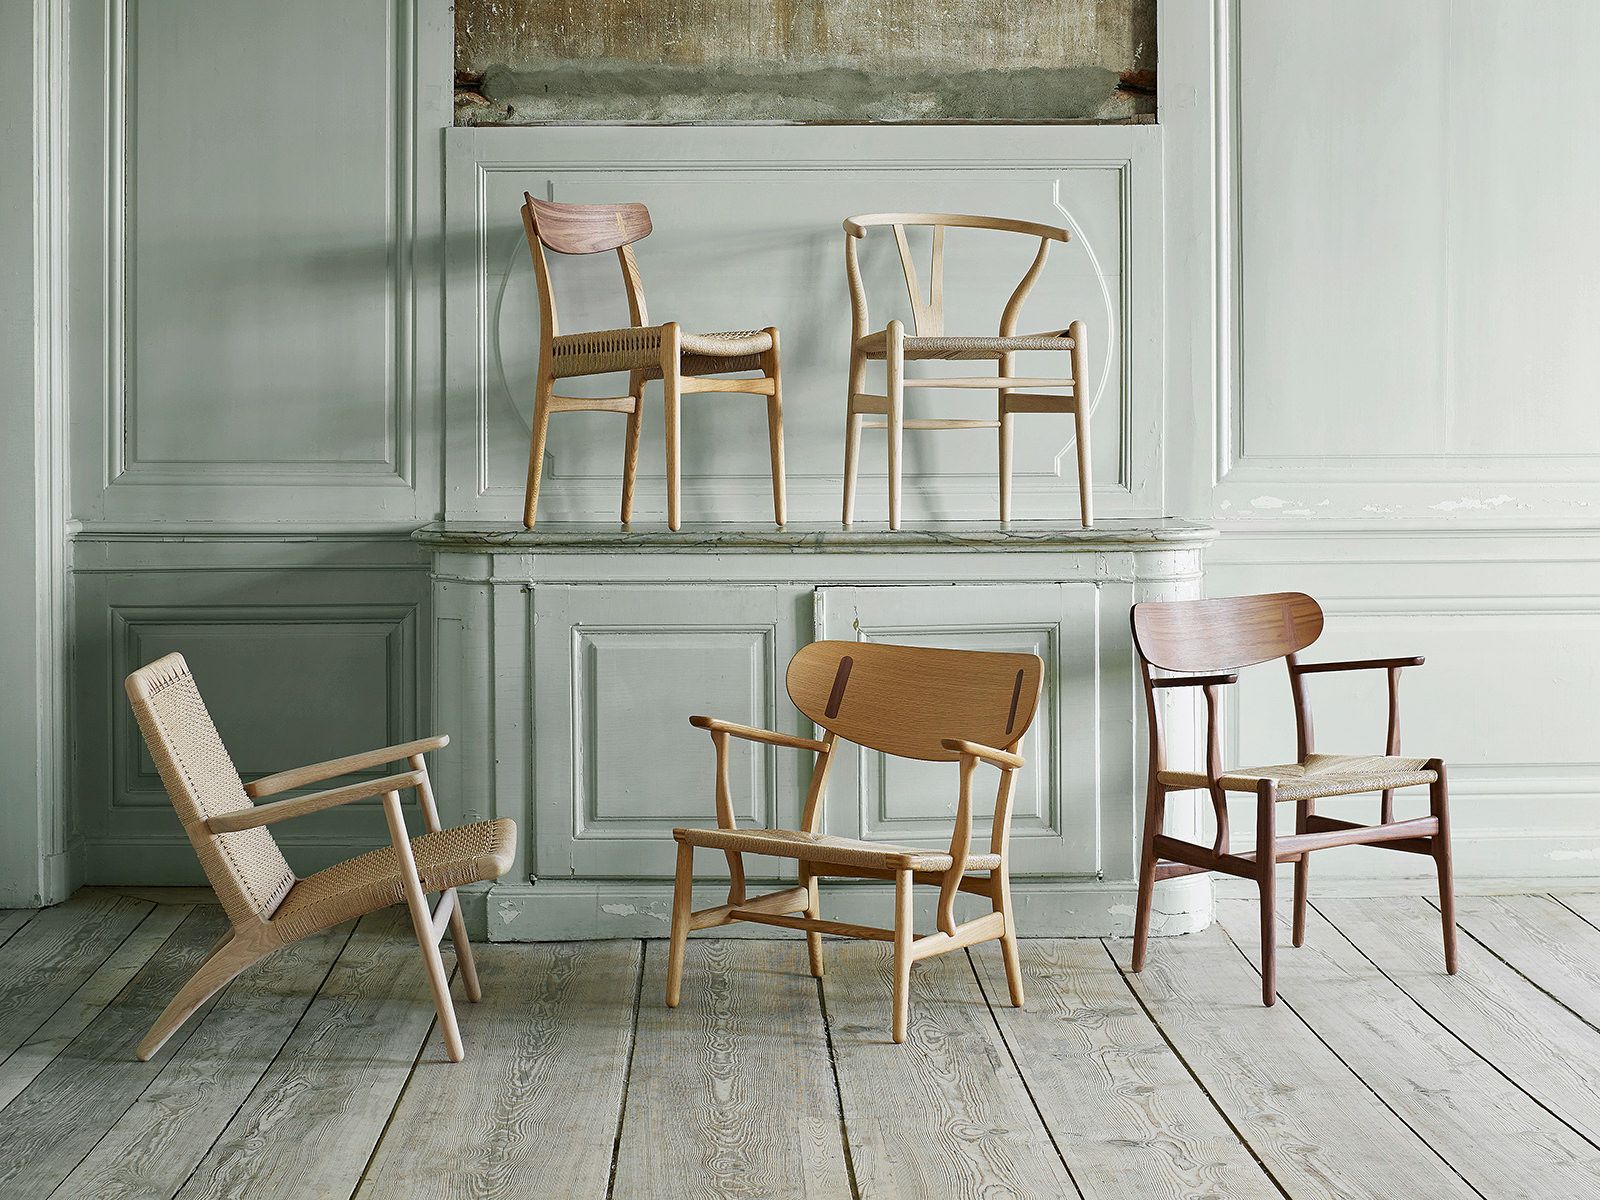 Hans Wegner Stühle The Five First Masterpieces Von Hans J. Wegner